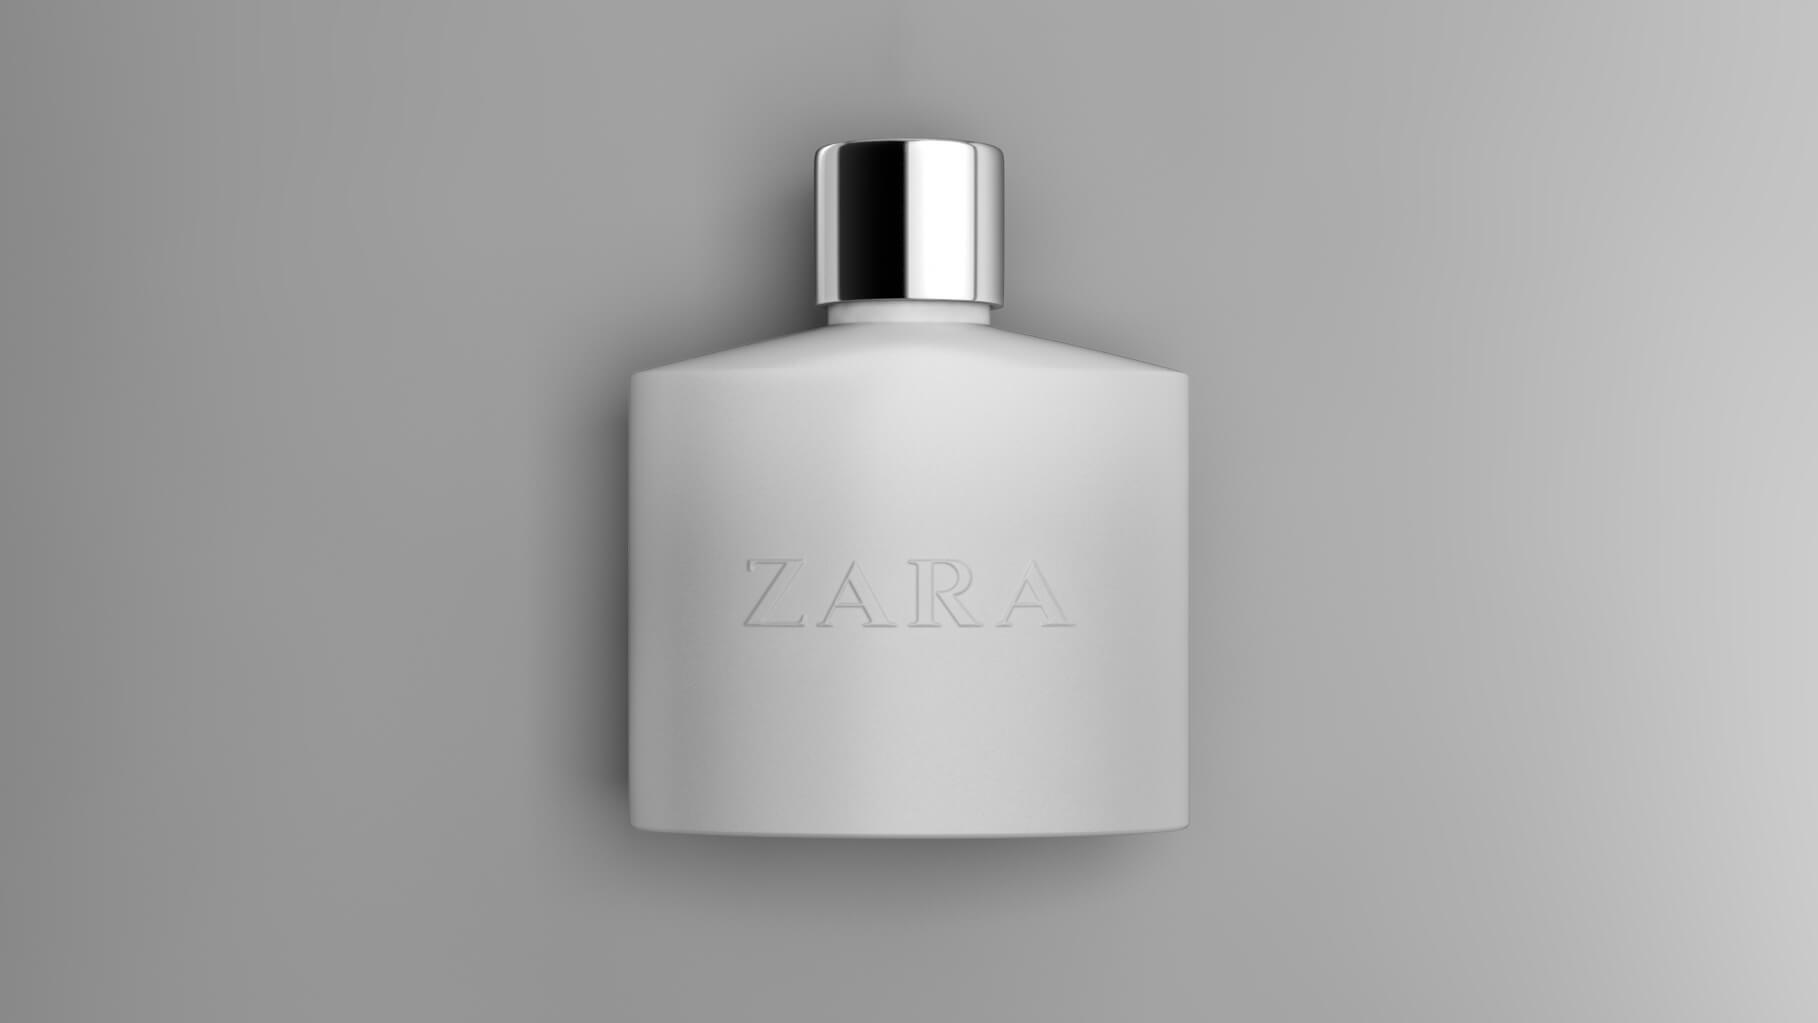 Zara fragrance